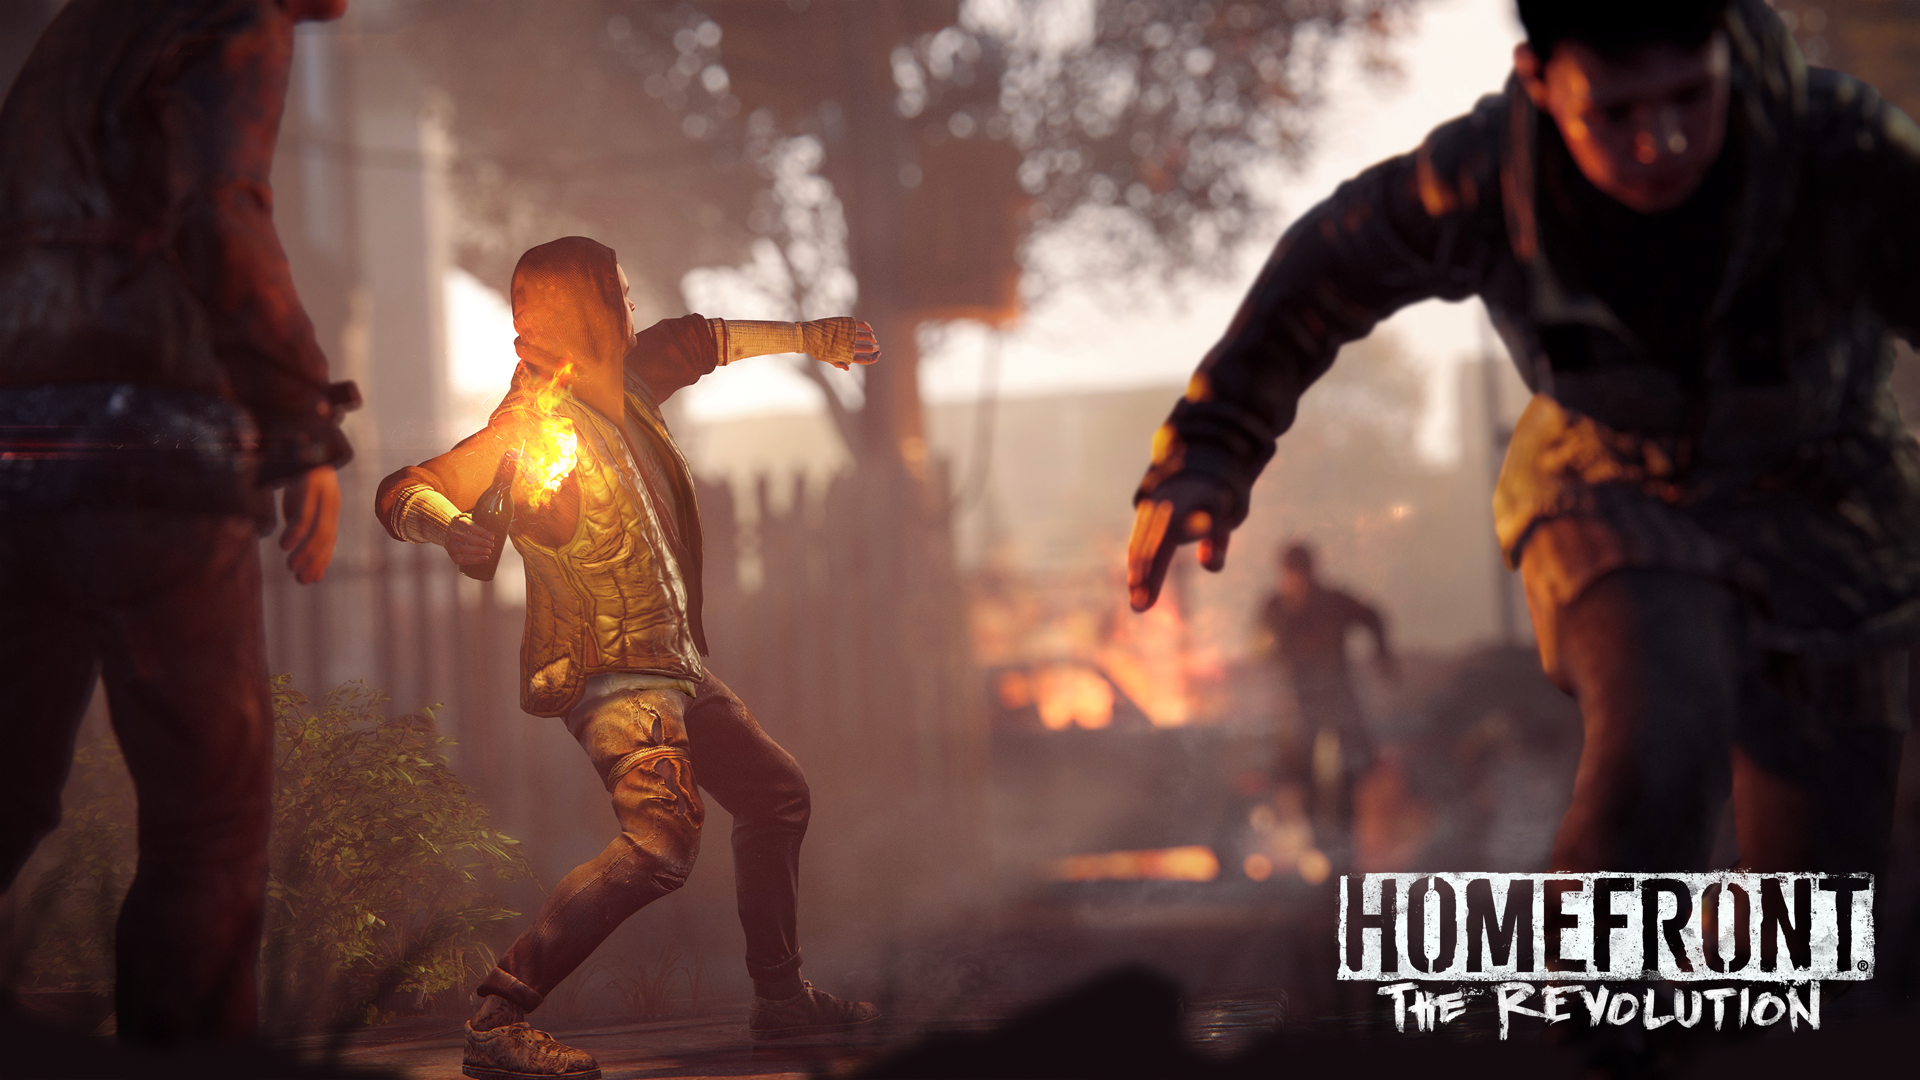 . Hdpng.com Gallery Image 4 Hdpng.com  - Homefront Video Game, Transparent background PNG HD thumbnail